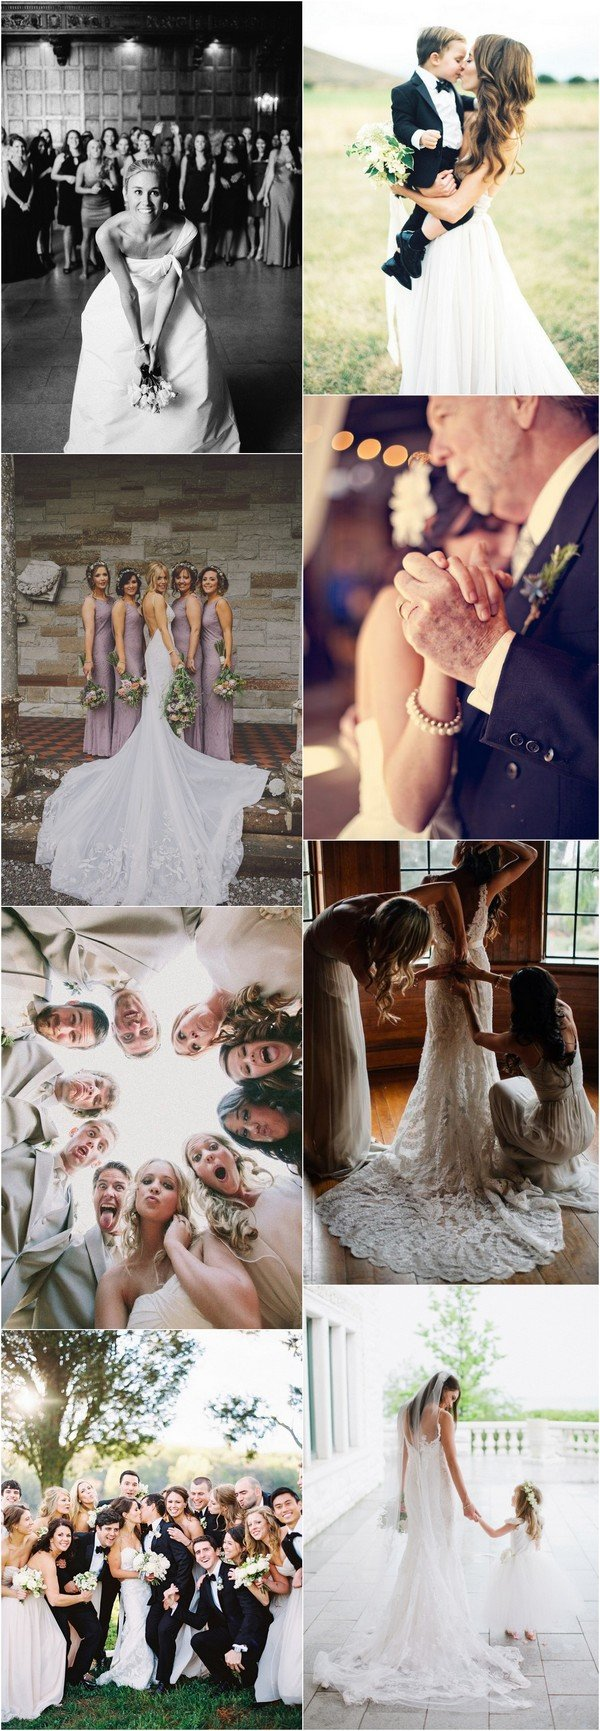 creative wedding party photo ideas